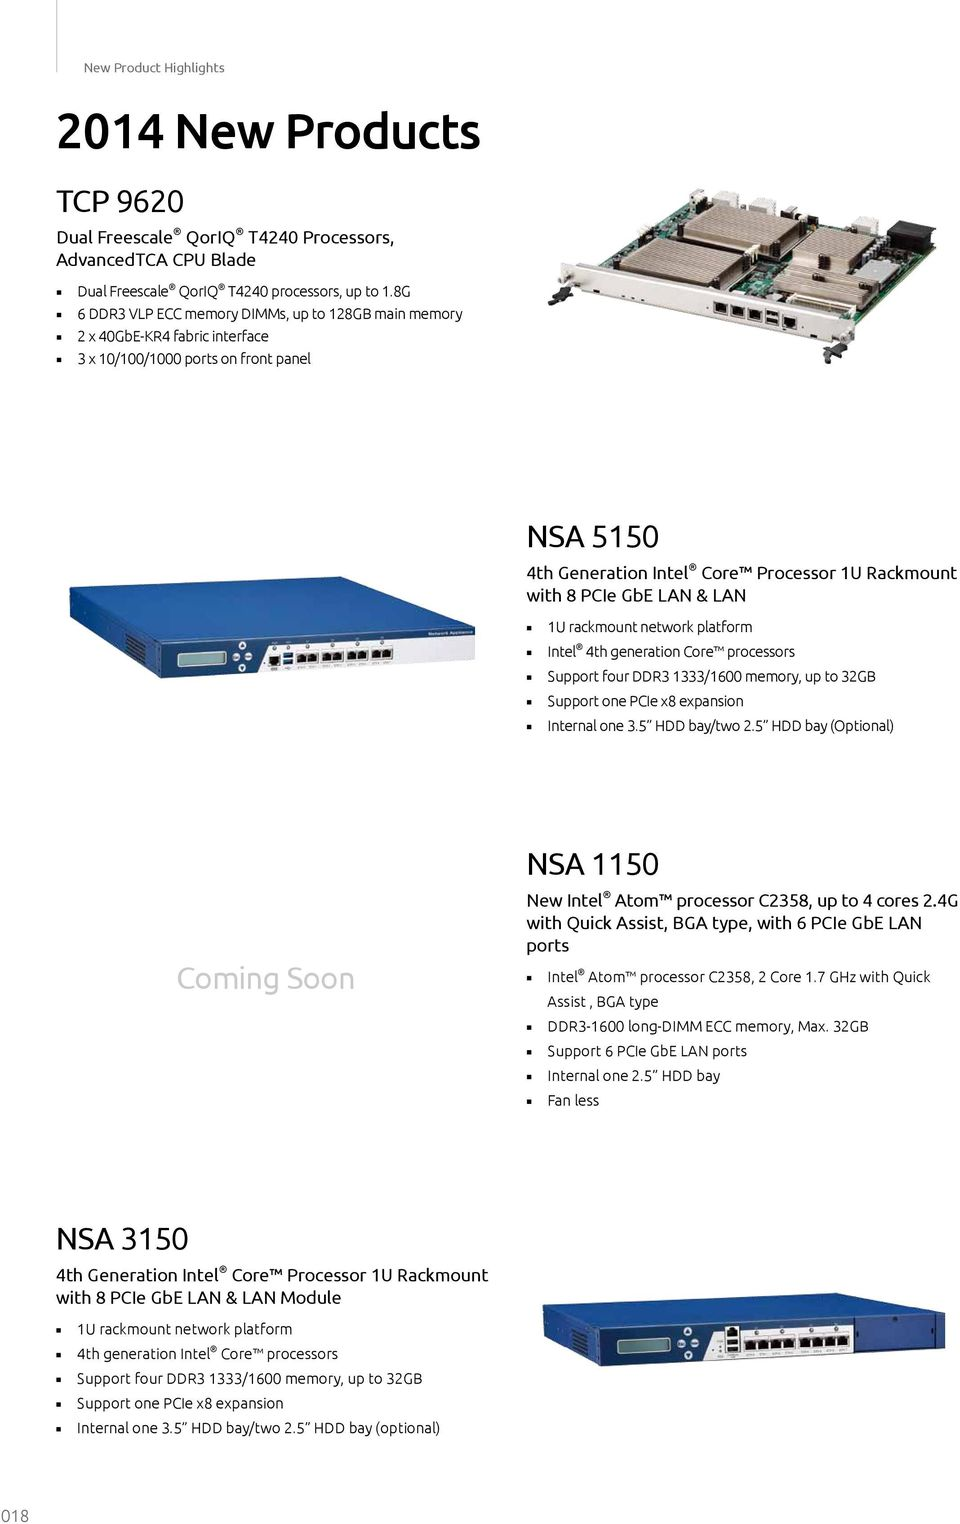 LAN & LAN 1U rackmount network platform Intel 4th generation Core processors Support four DDR3 1333/1600 memory, up to 32GB Support one PCIe x8 expansion Internal one 3.5 HDD bay/two 2.